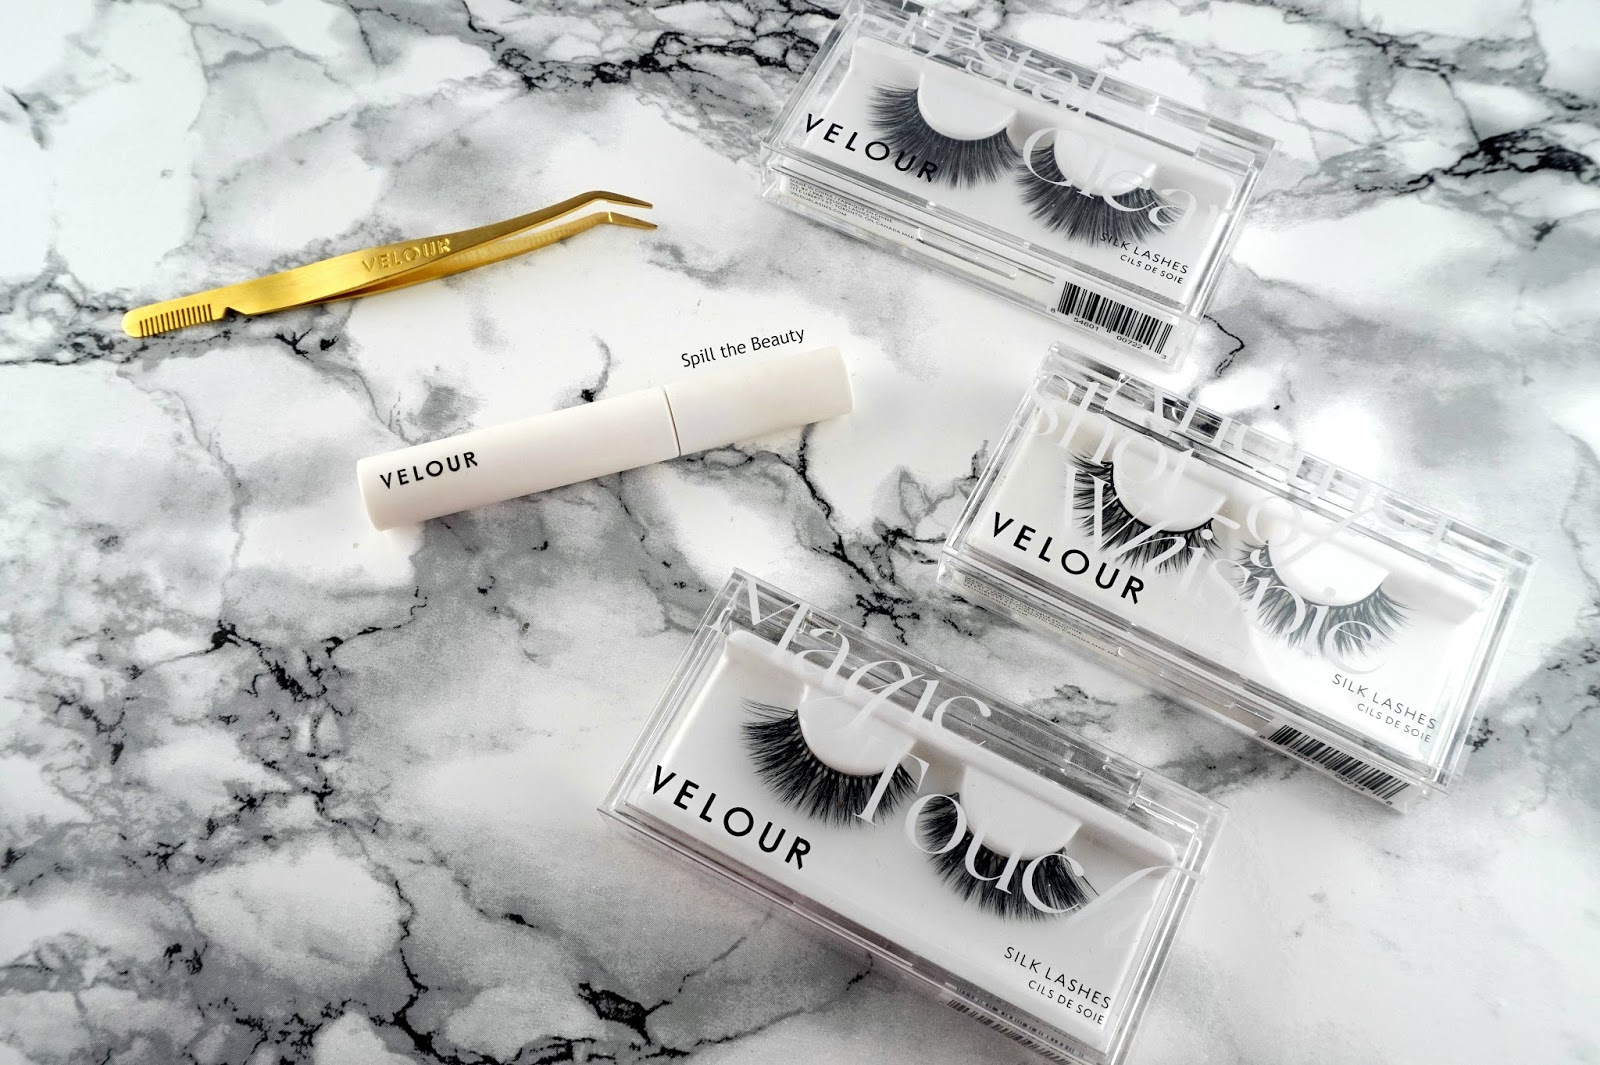 velour lashes live in lashes review patrick ta magic touch shot of whispie touch